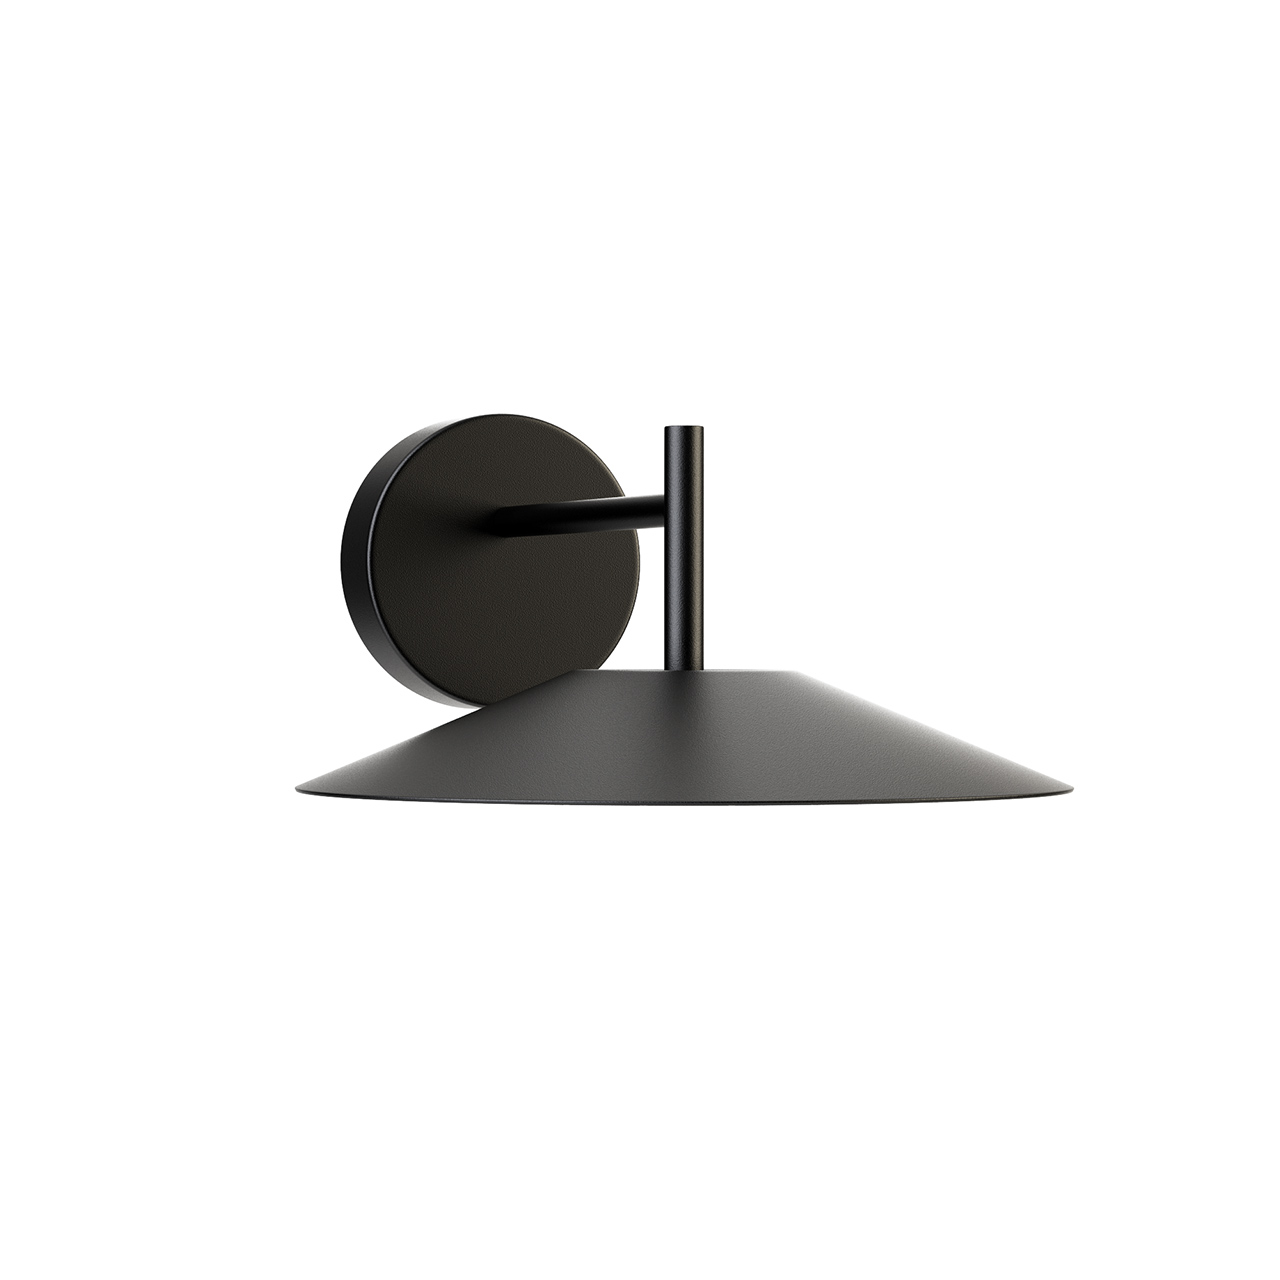 H Wall Fixture Light by LEDS C4